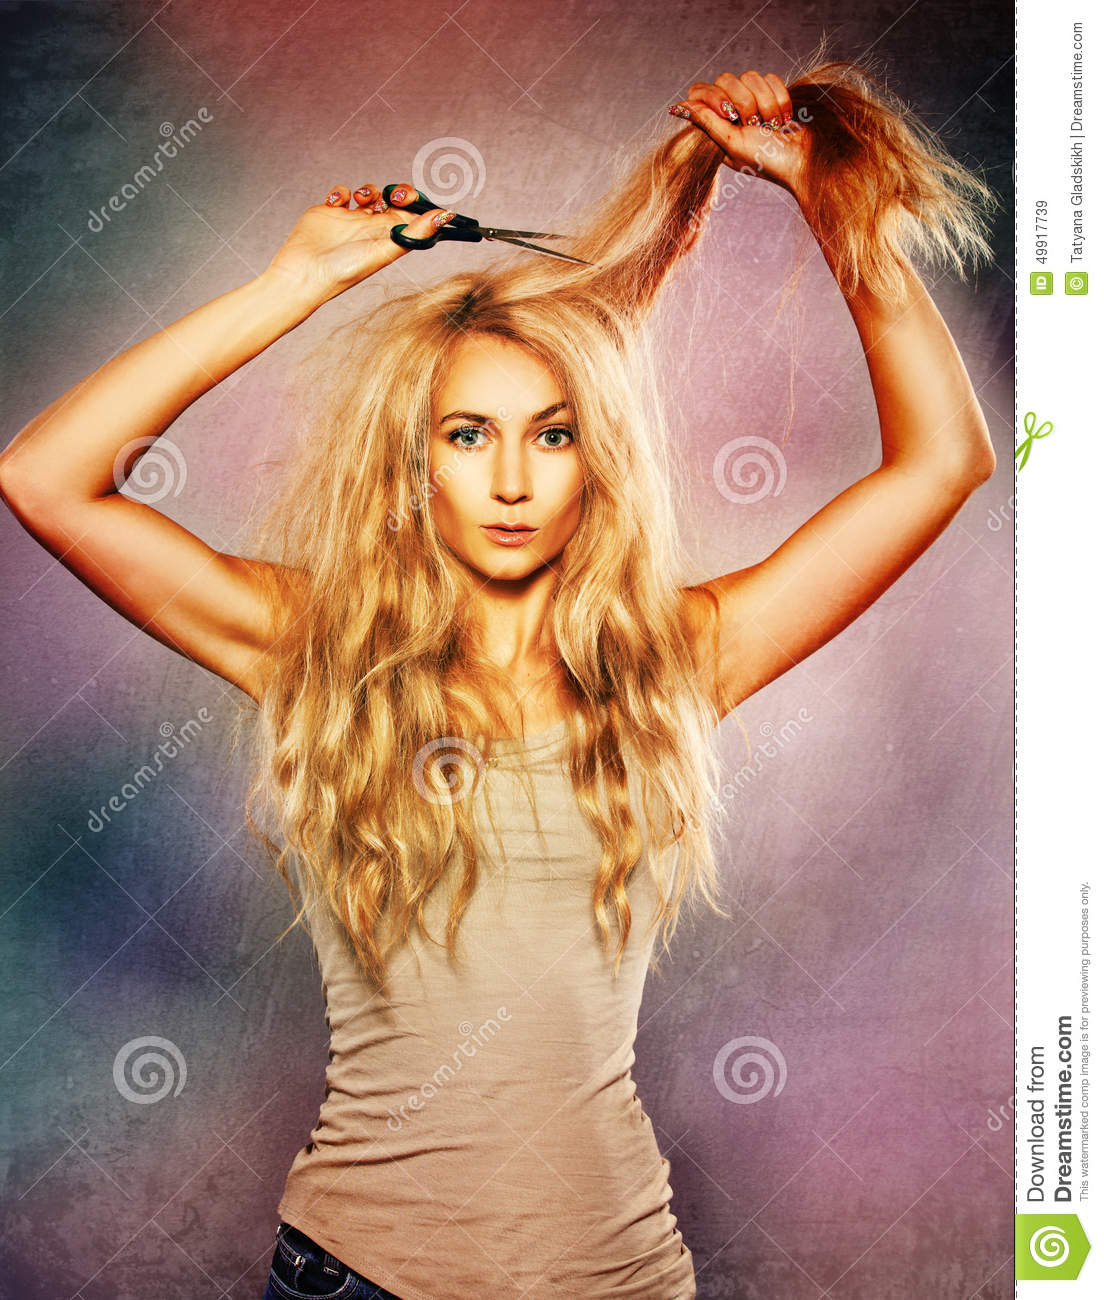 how to cut split ends off